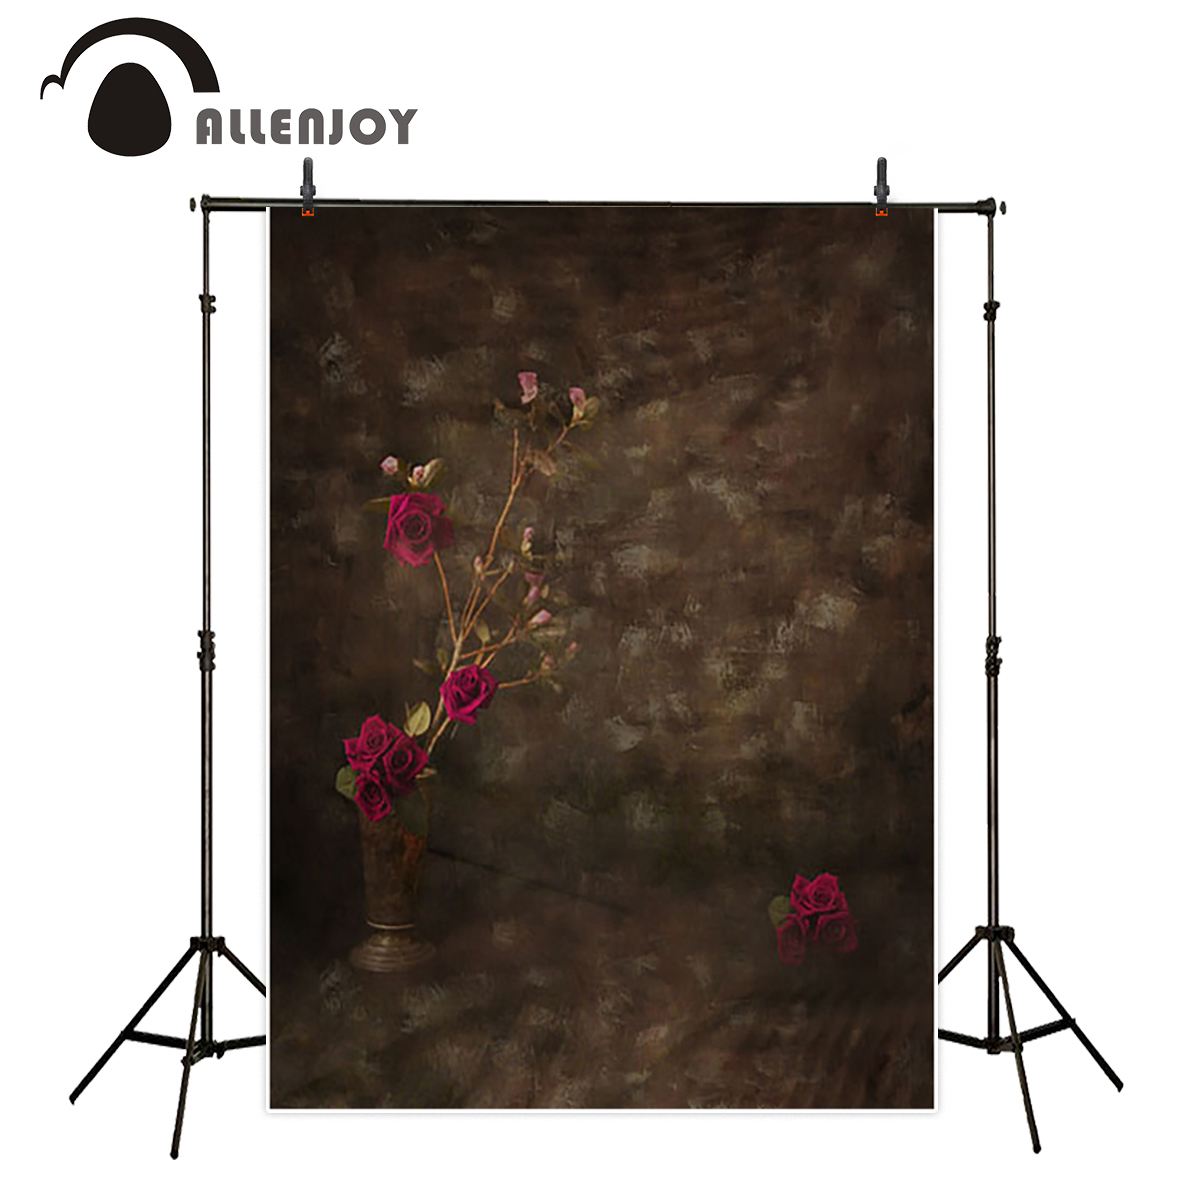 Allenjoy newborn photography background vintage rose flower brown oil painting backdrop portrait shooting fantasy props 8x10ft valentine s day photography pink love heart shape adult portrait backdrop d 7324